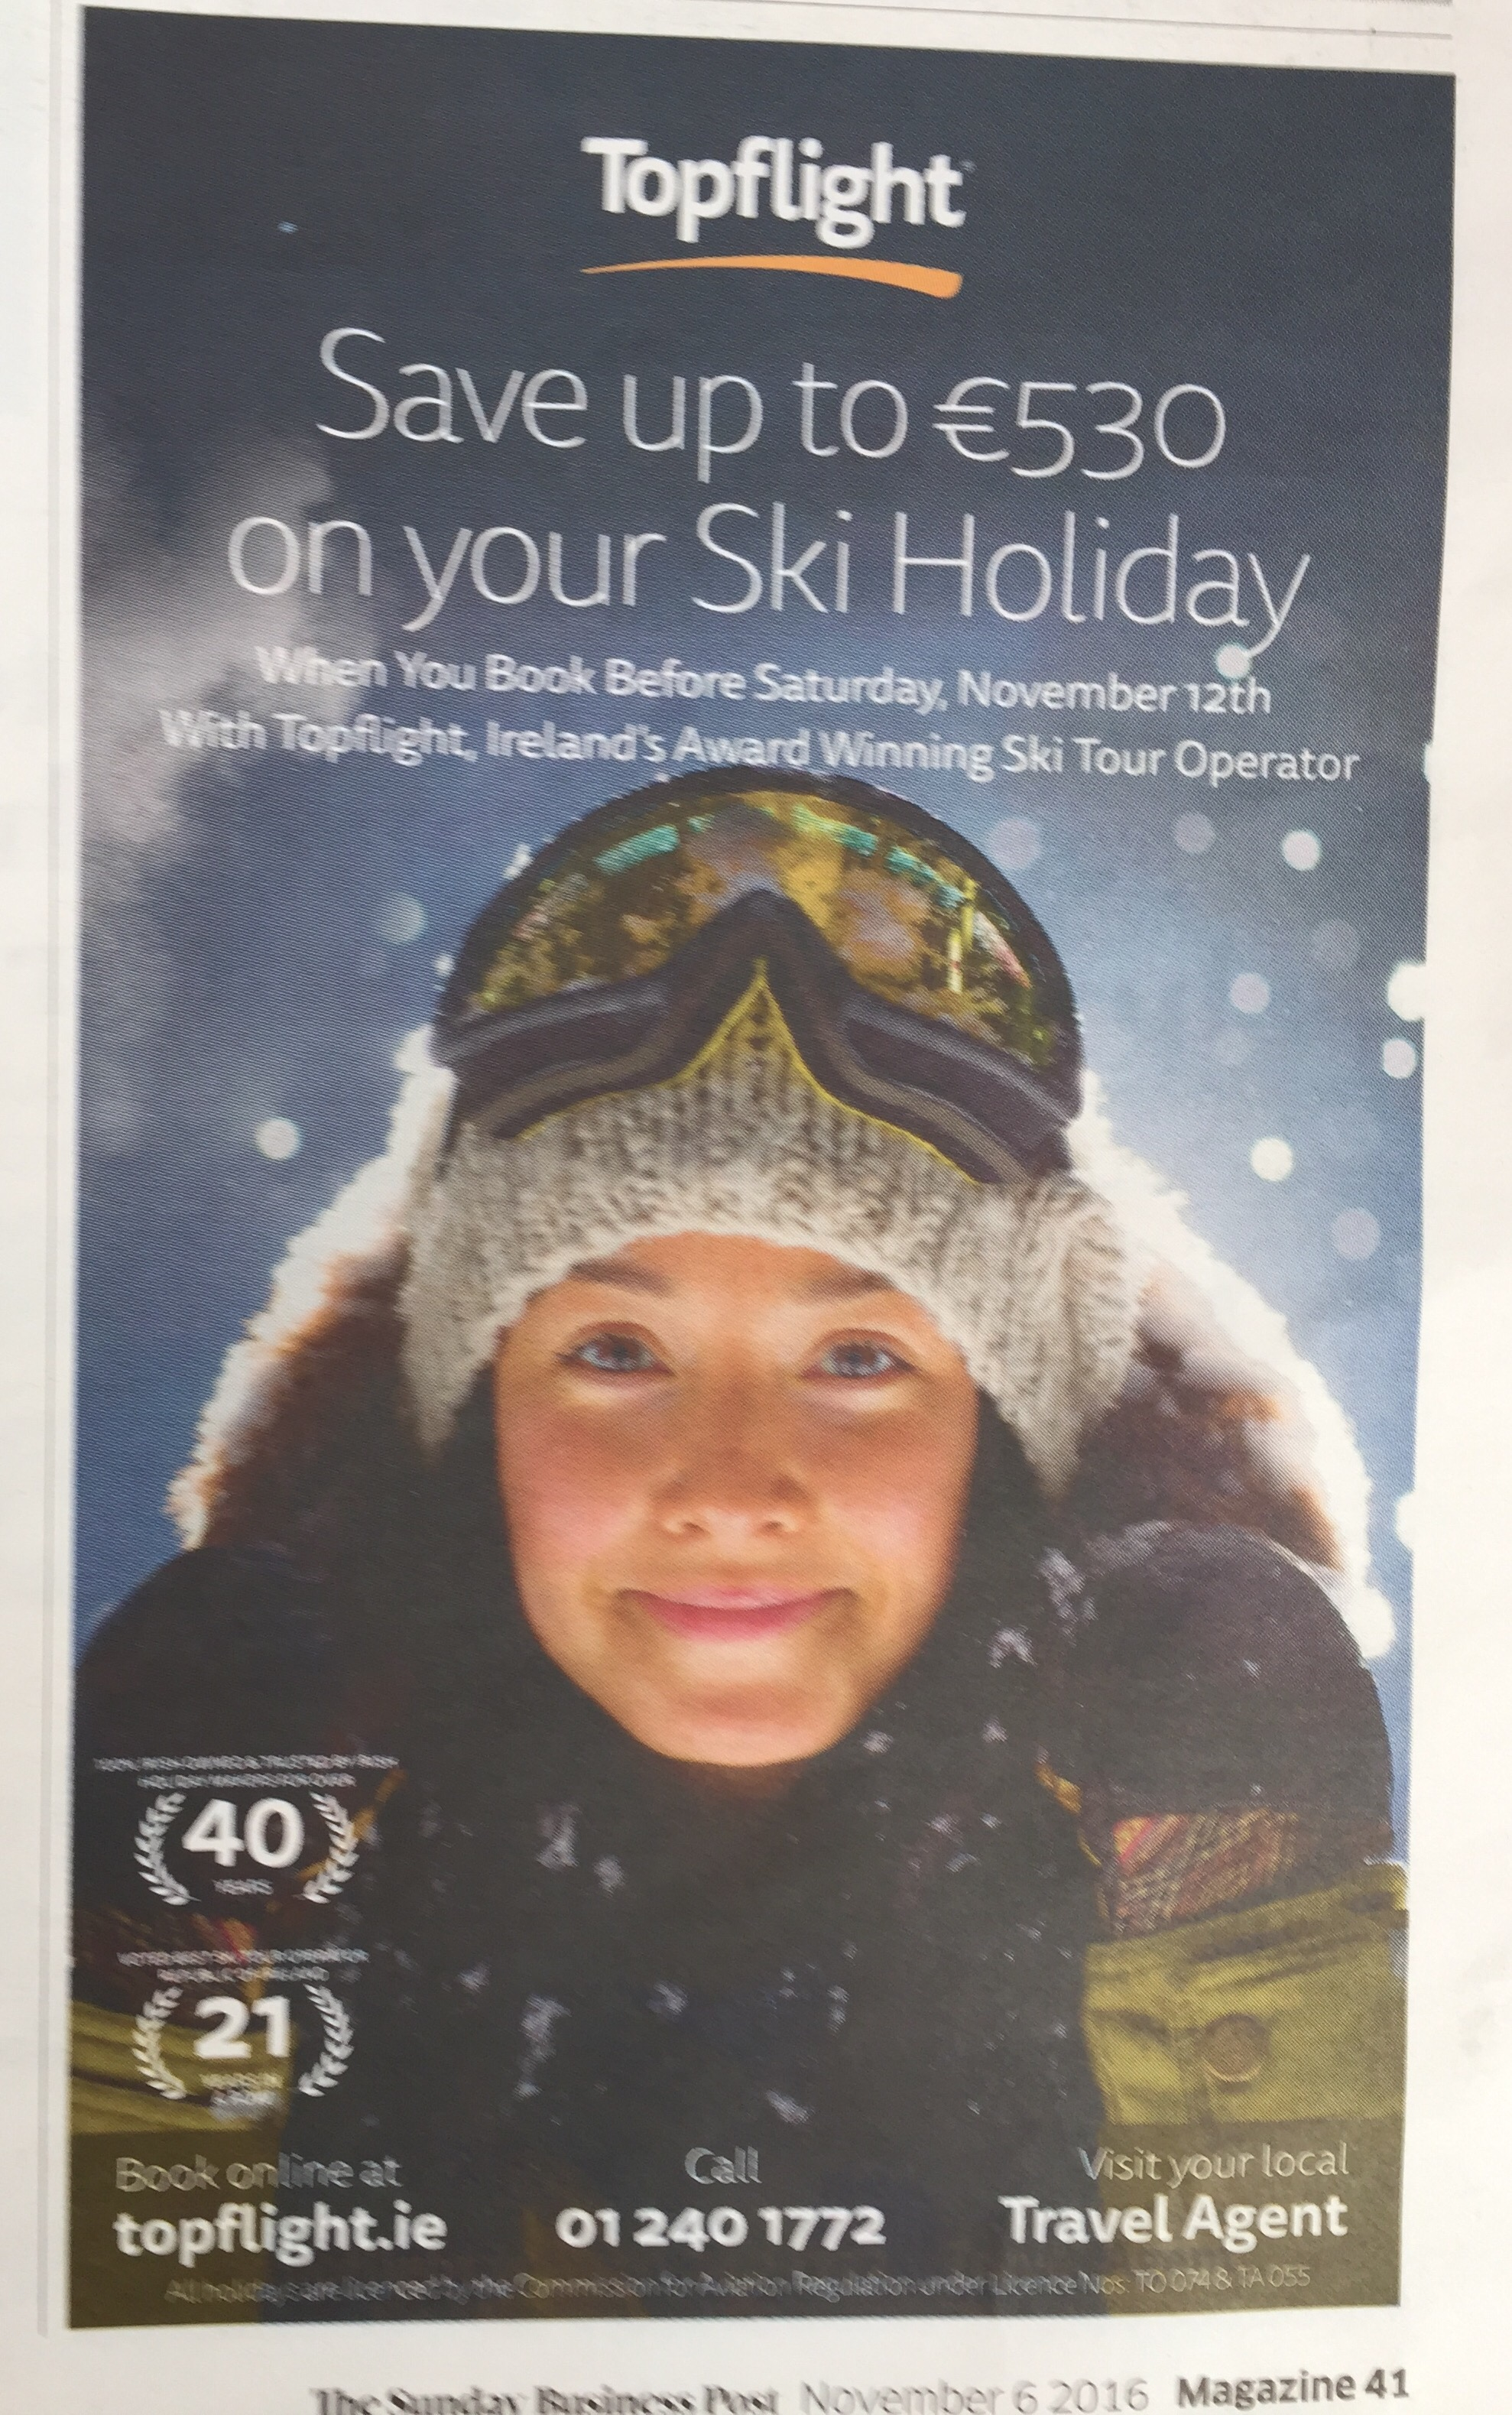 Topflight – save up to €530 on your ski holiday